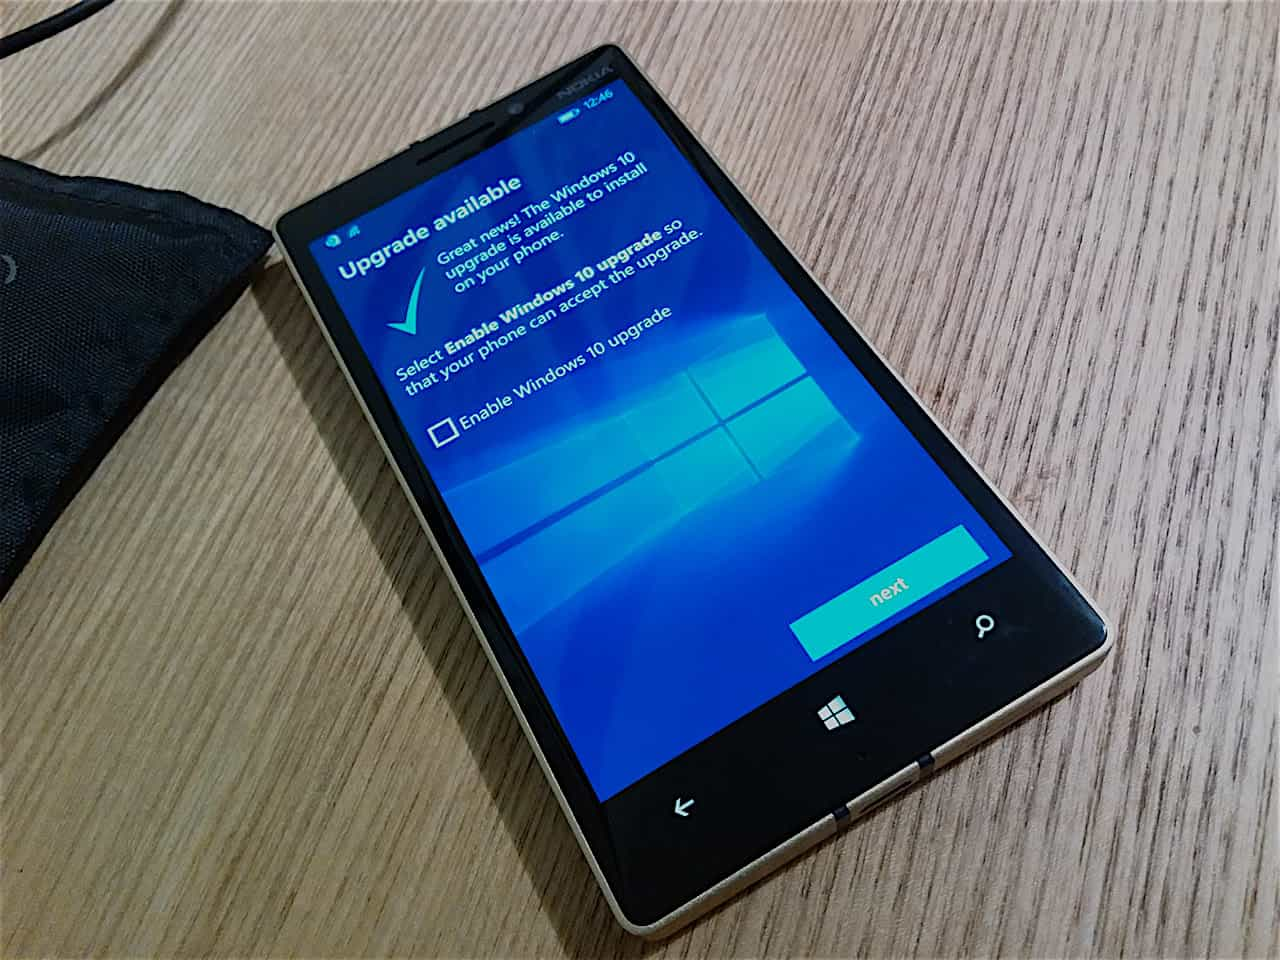 You will be soon able to flash a custom ROM to your Windows